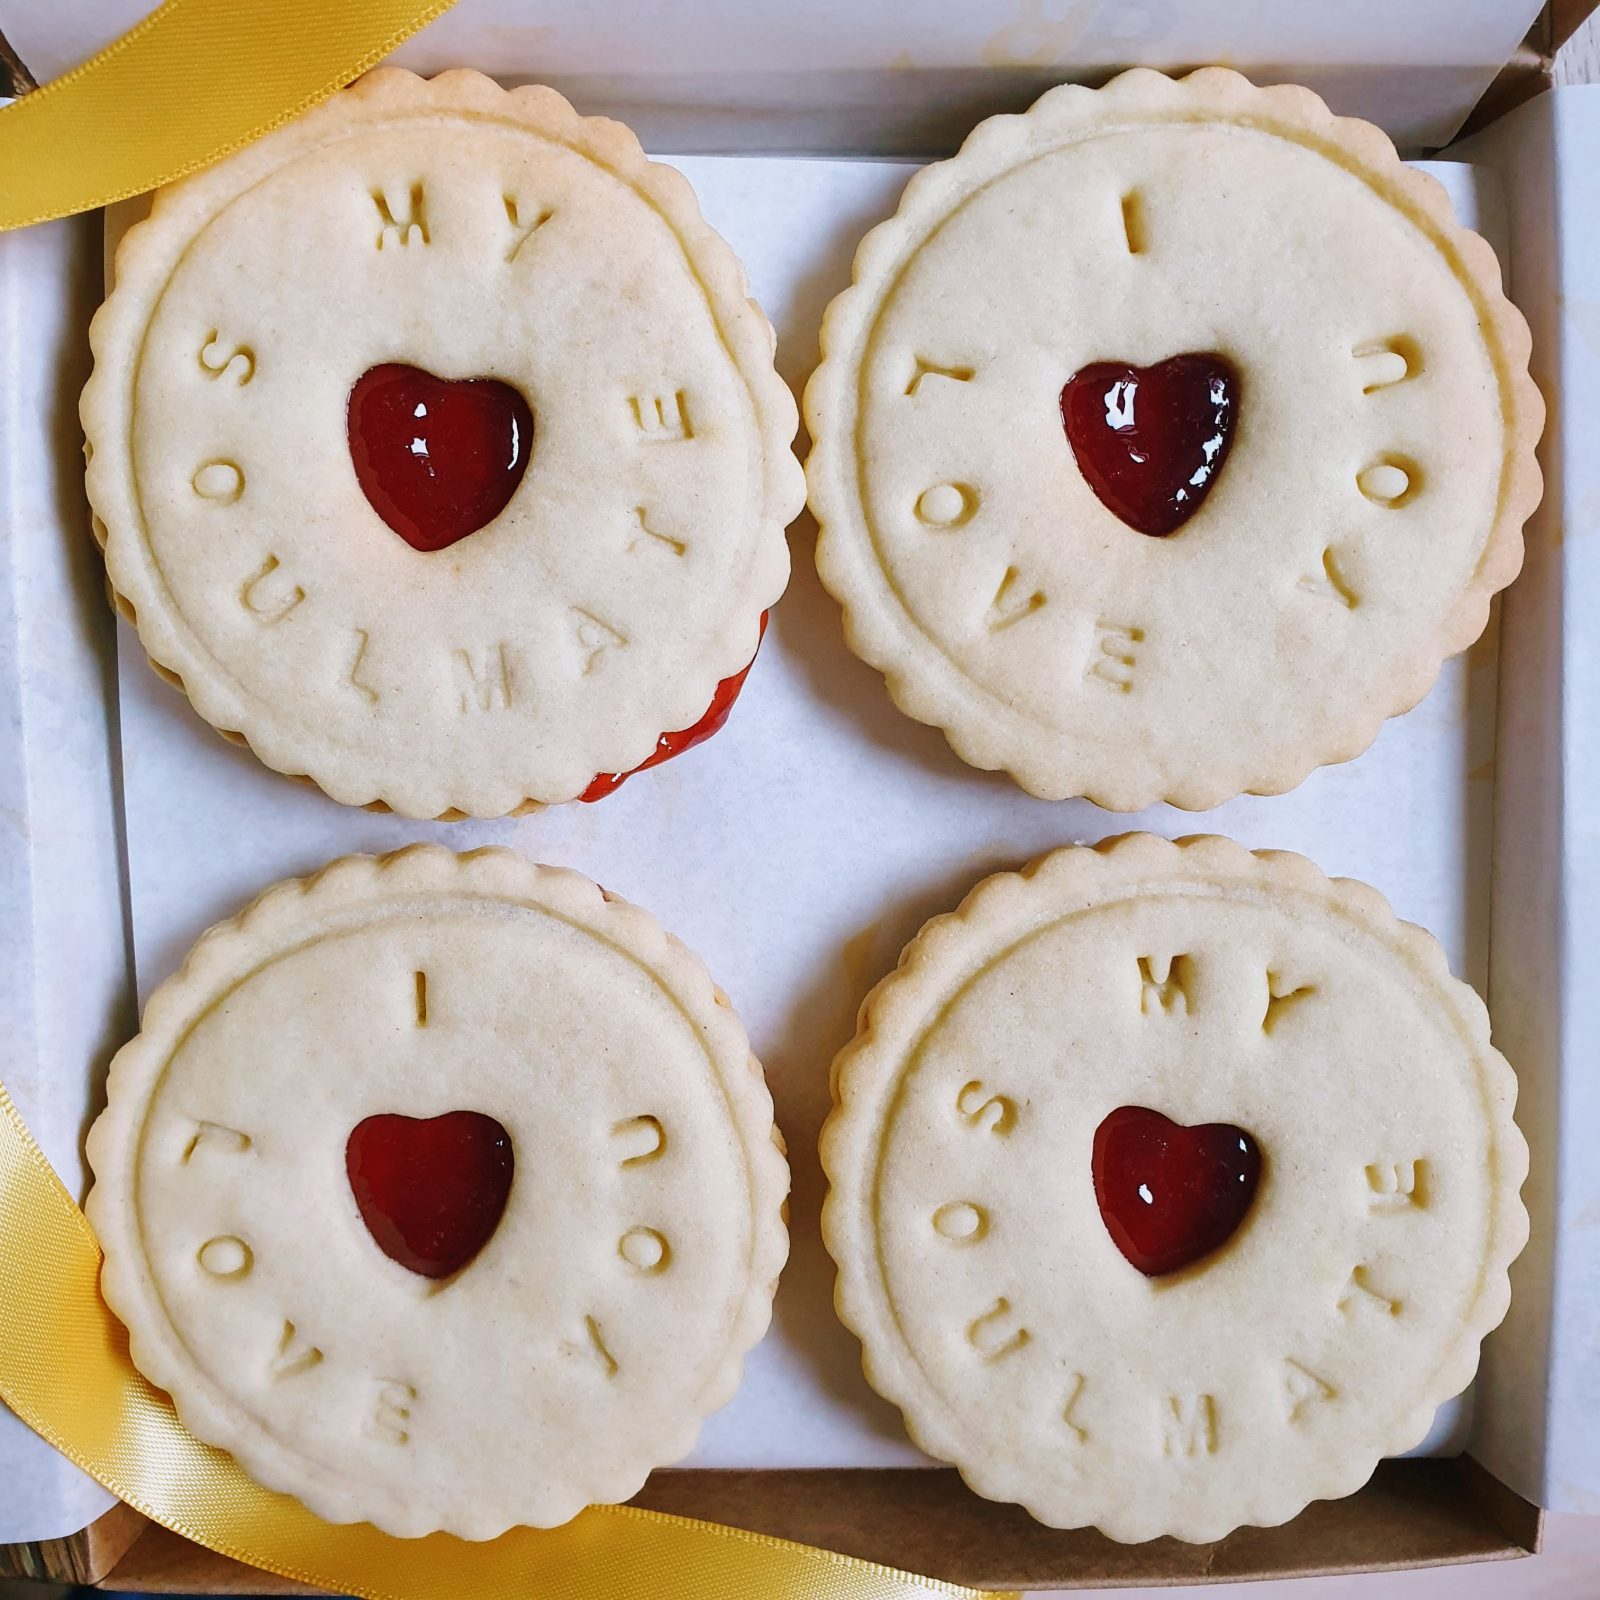 My Soulmate I love you biscuits by Bloom Bakers